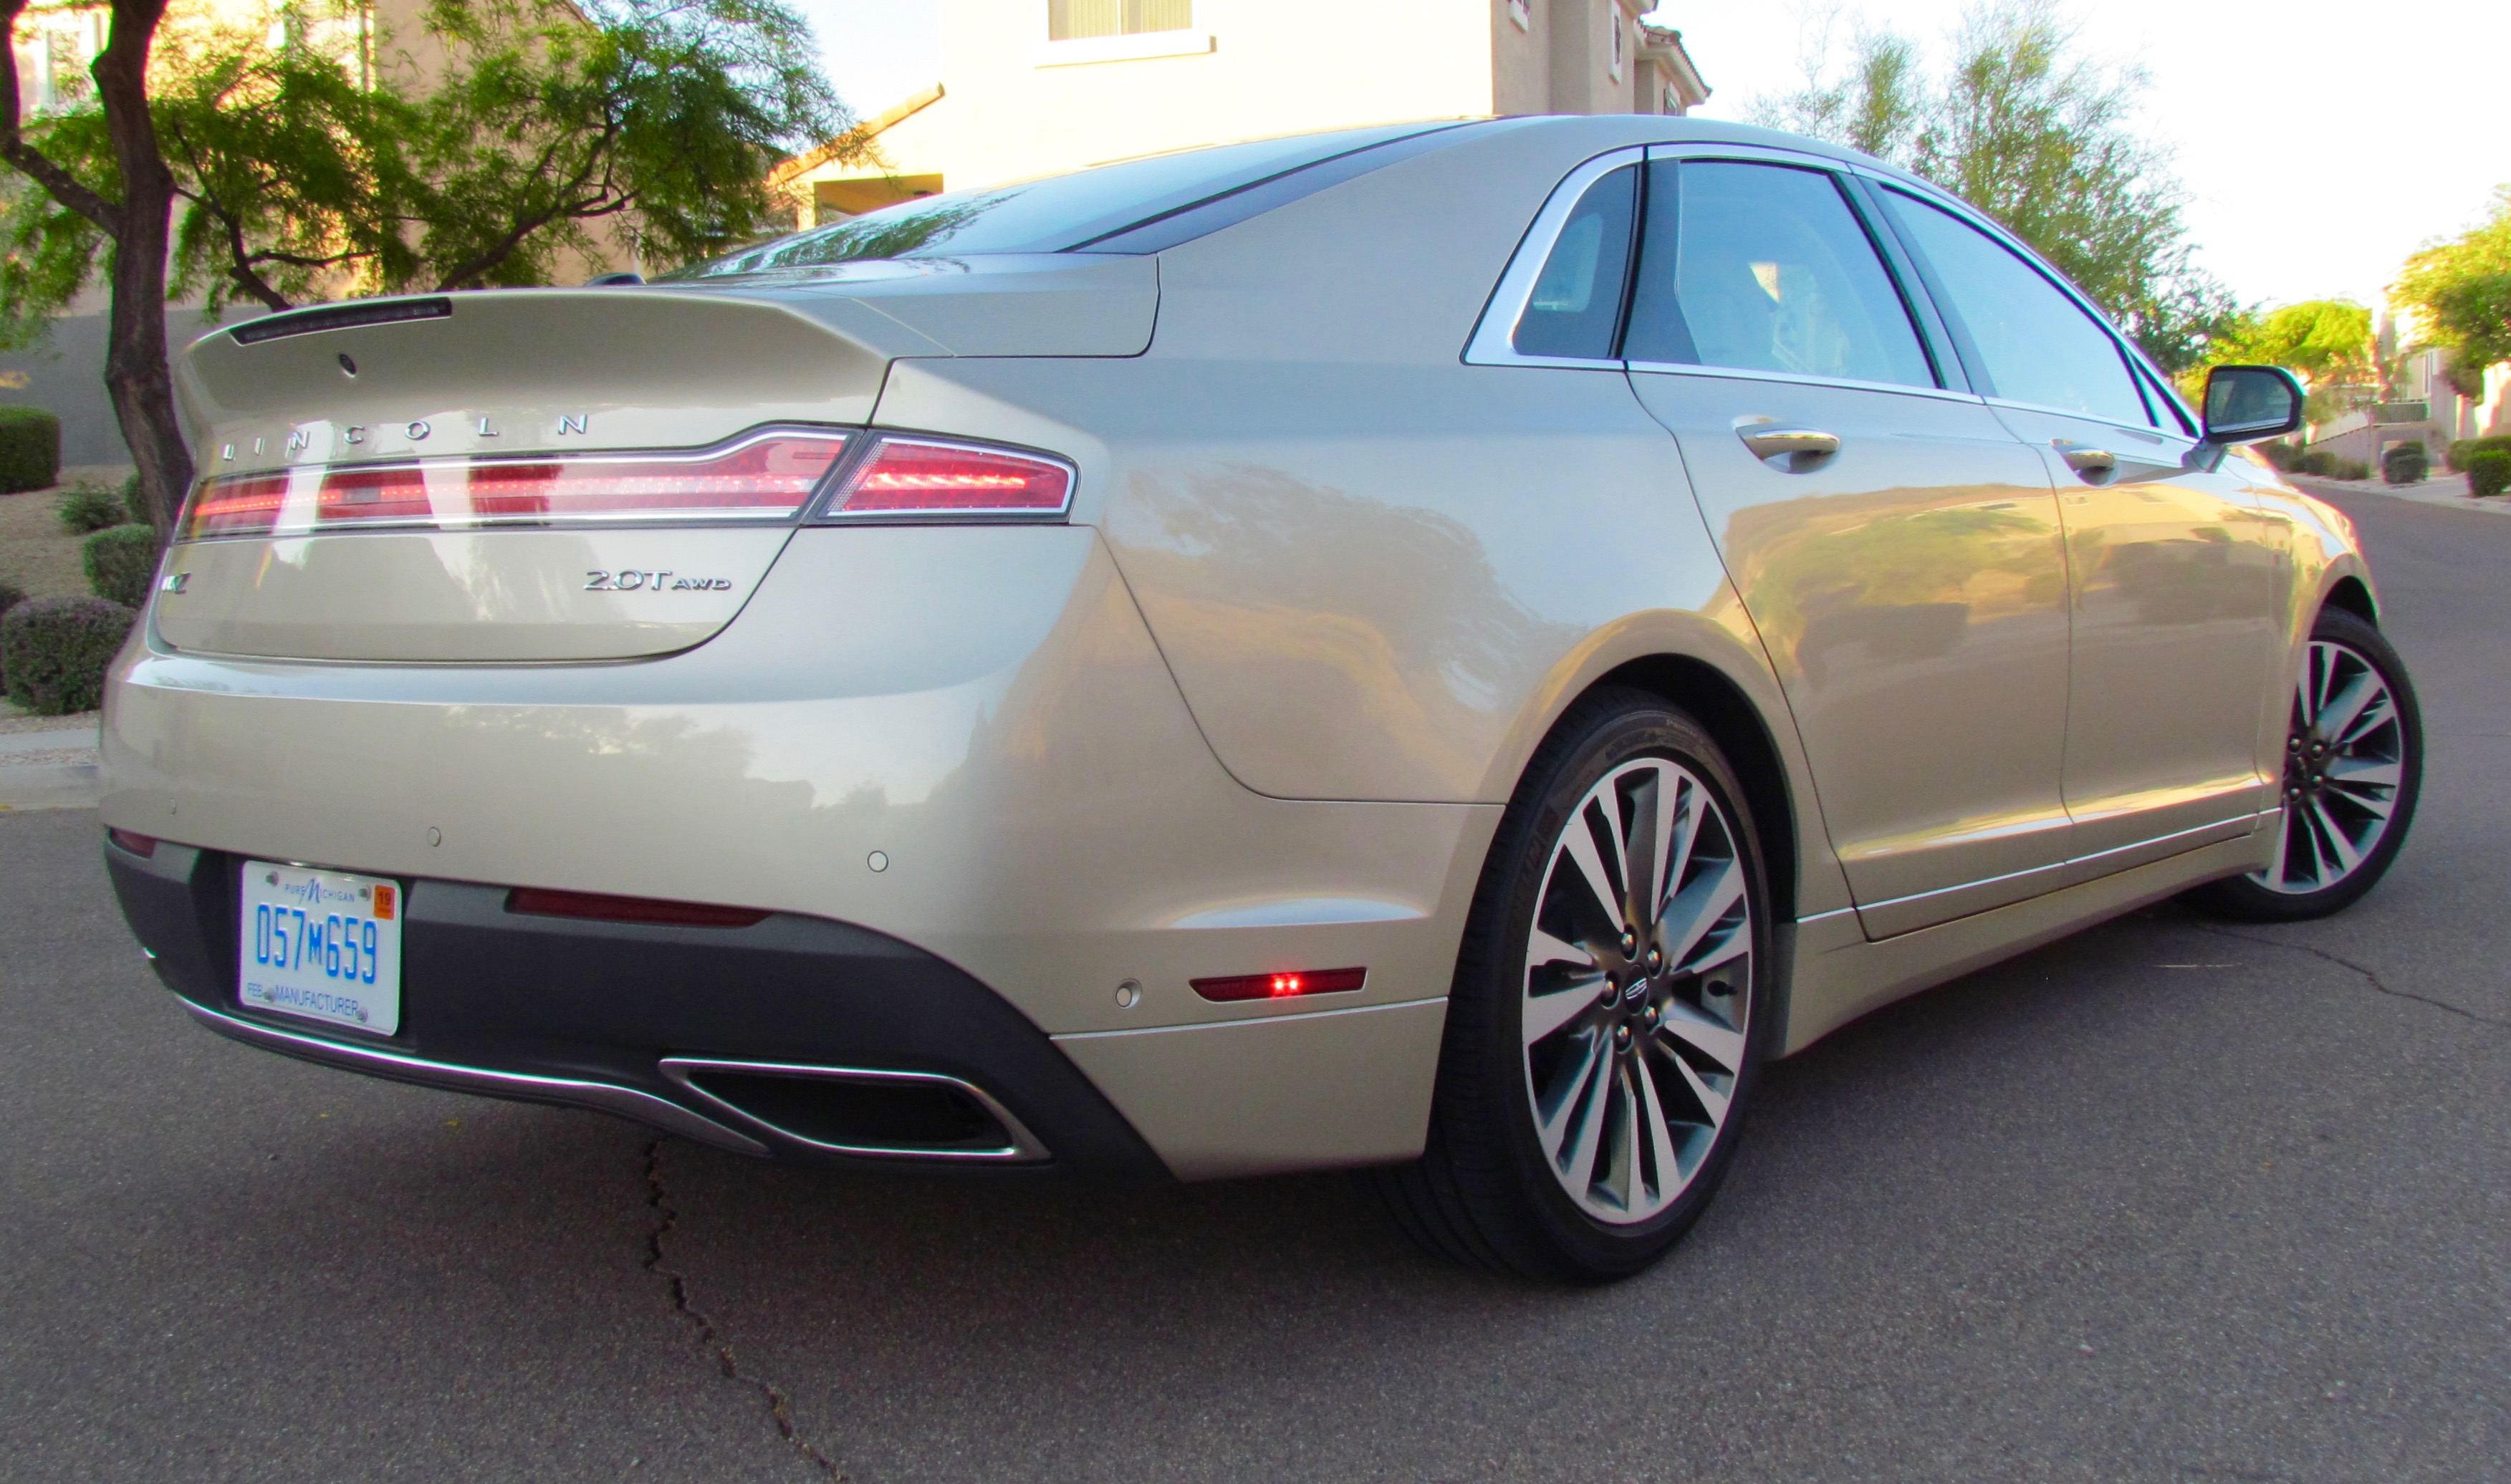 Badge tells others your luxury ride has a four-cylinder, albeit turbocharged engine